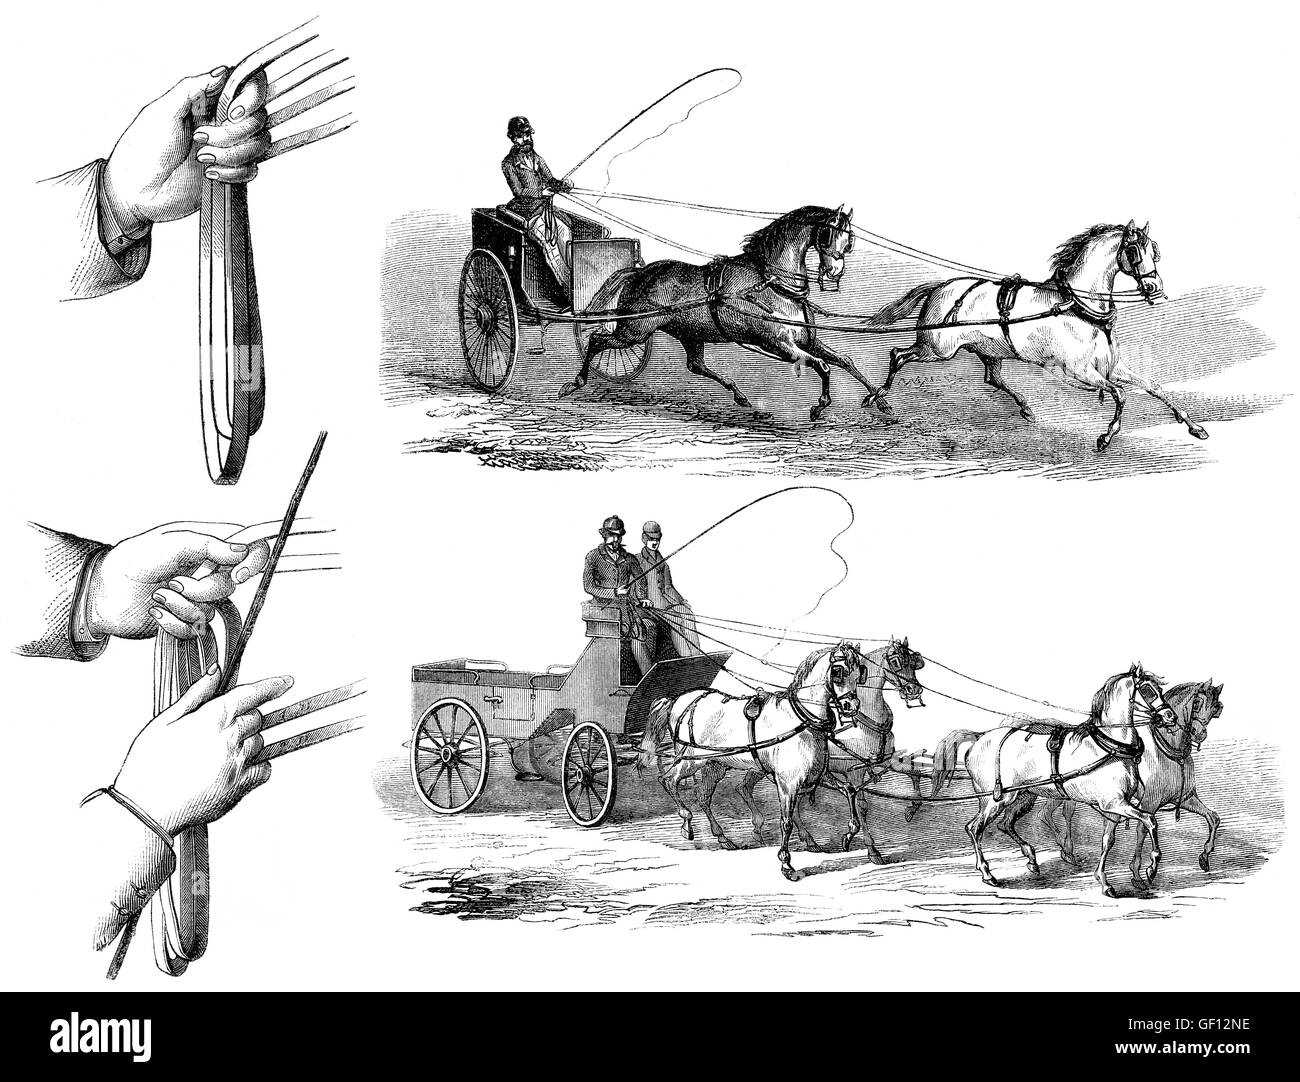 Methods of guiding horses by pulling on its reins, two or four horses driving - Stock Image